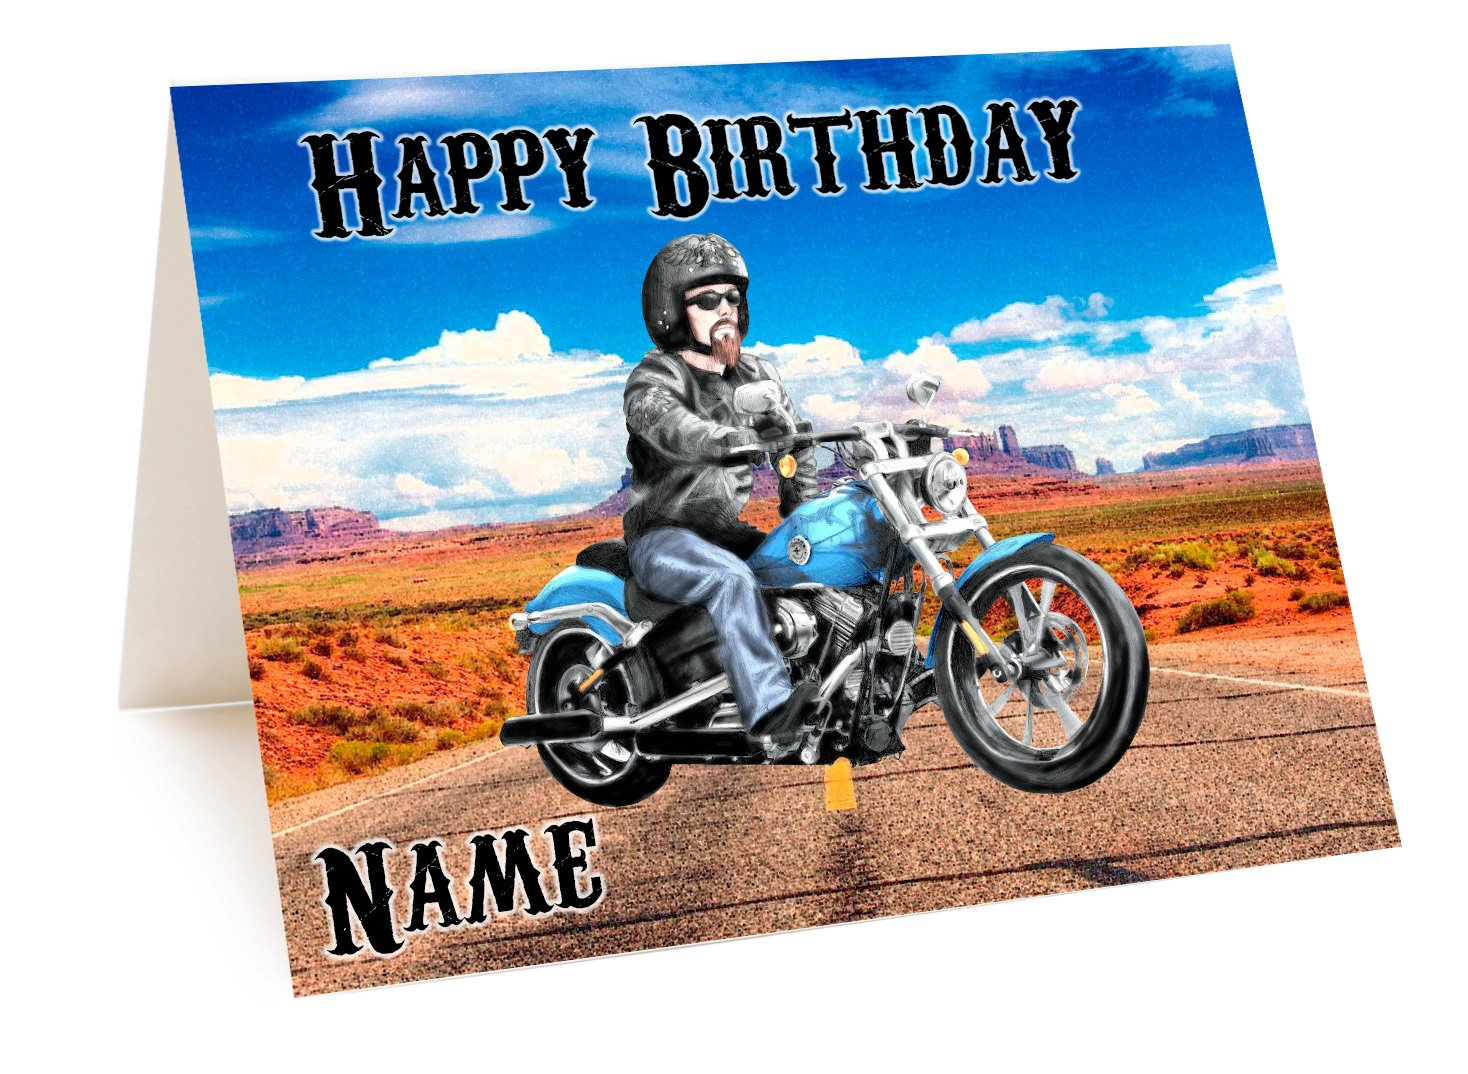 Harley motorbike personalised birthday card add any name and age harley motorbike personalised birthday card add any name and age amazon office products kristyandbryce Image collections